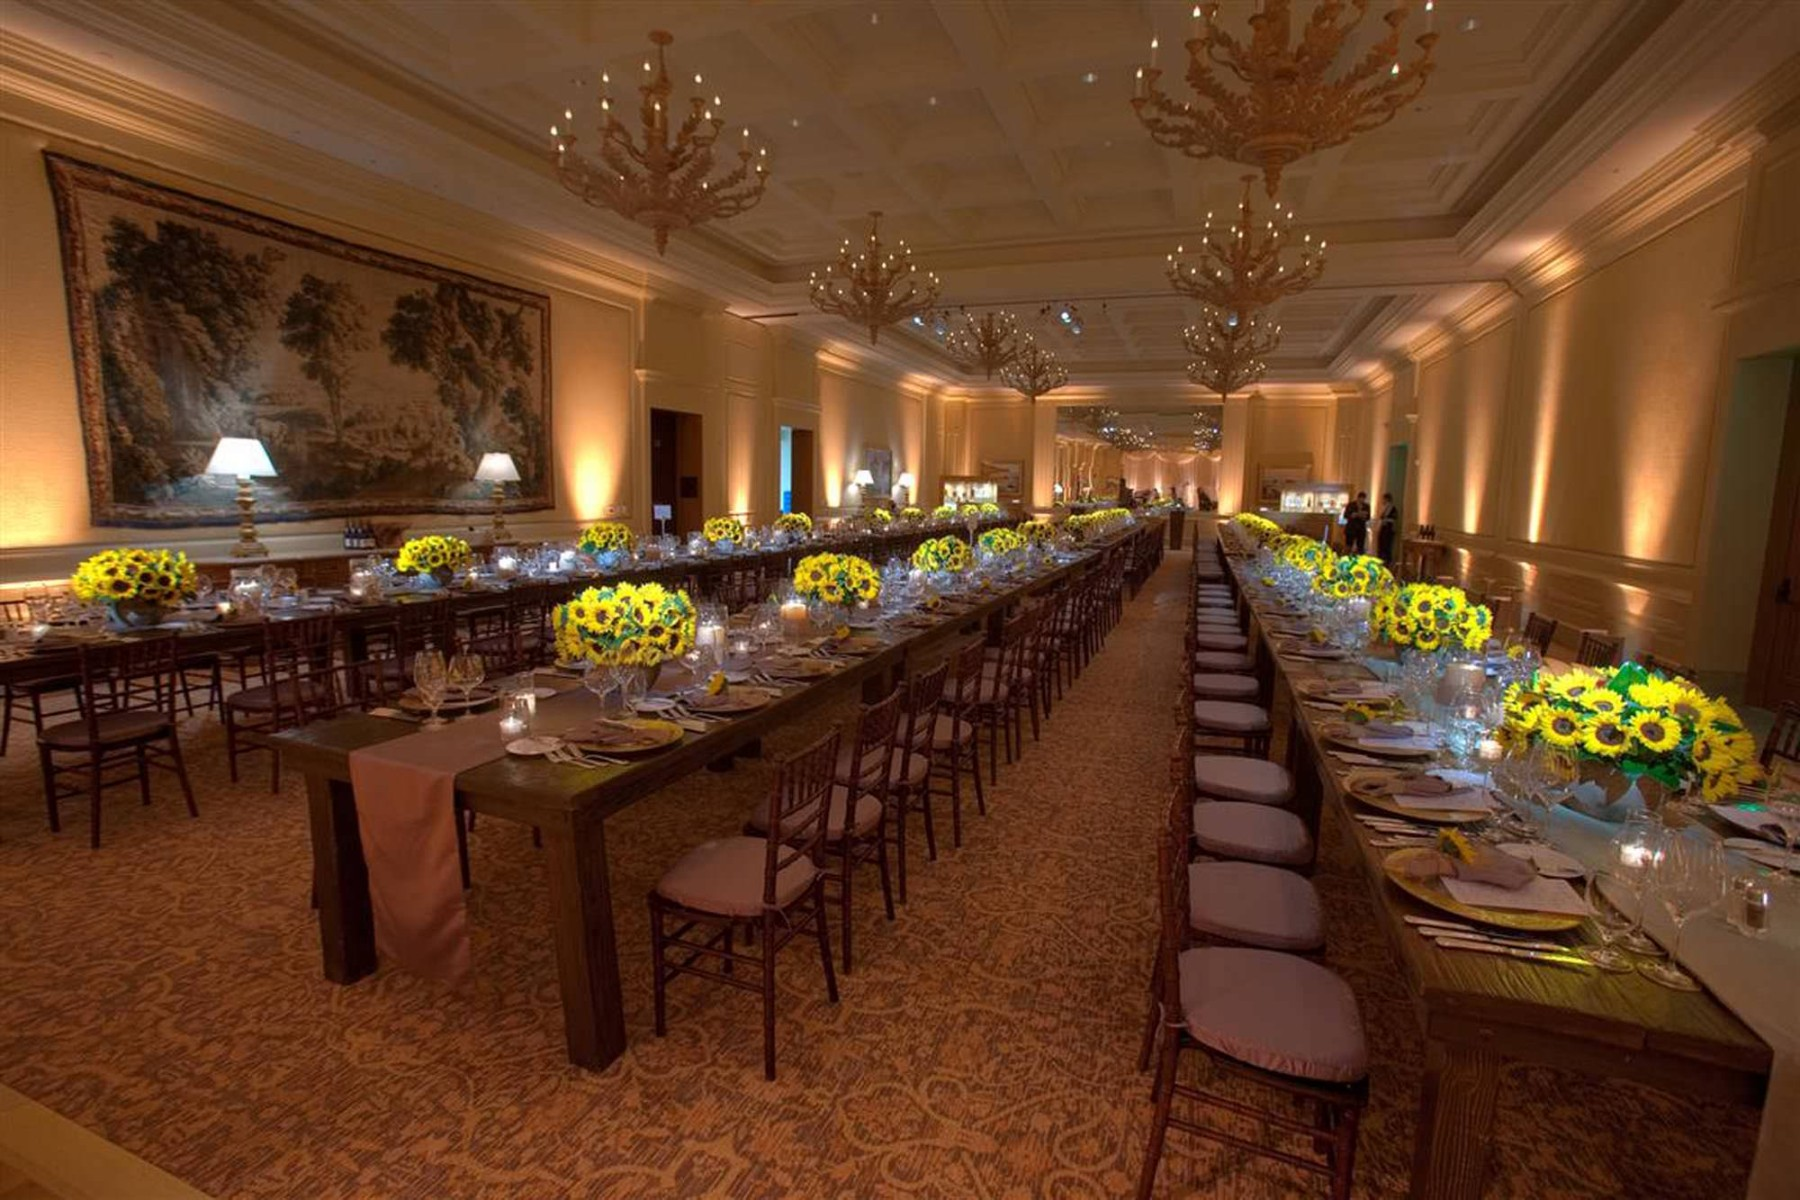 nisies-enchanted-florist-orange-county-Sunflowers-Cosentino-Rehearsal-Dinner-Pelican-Hill-Resort-event-9